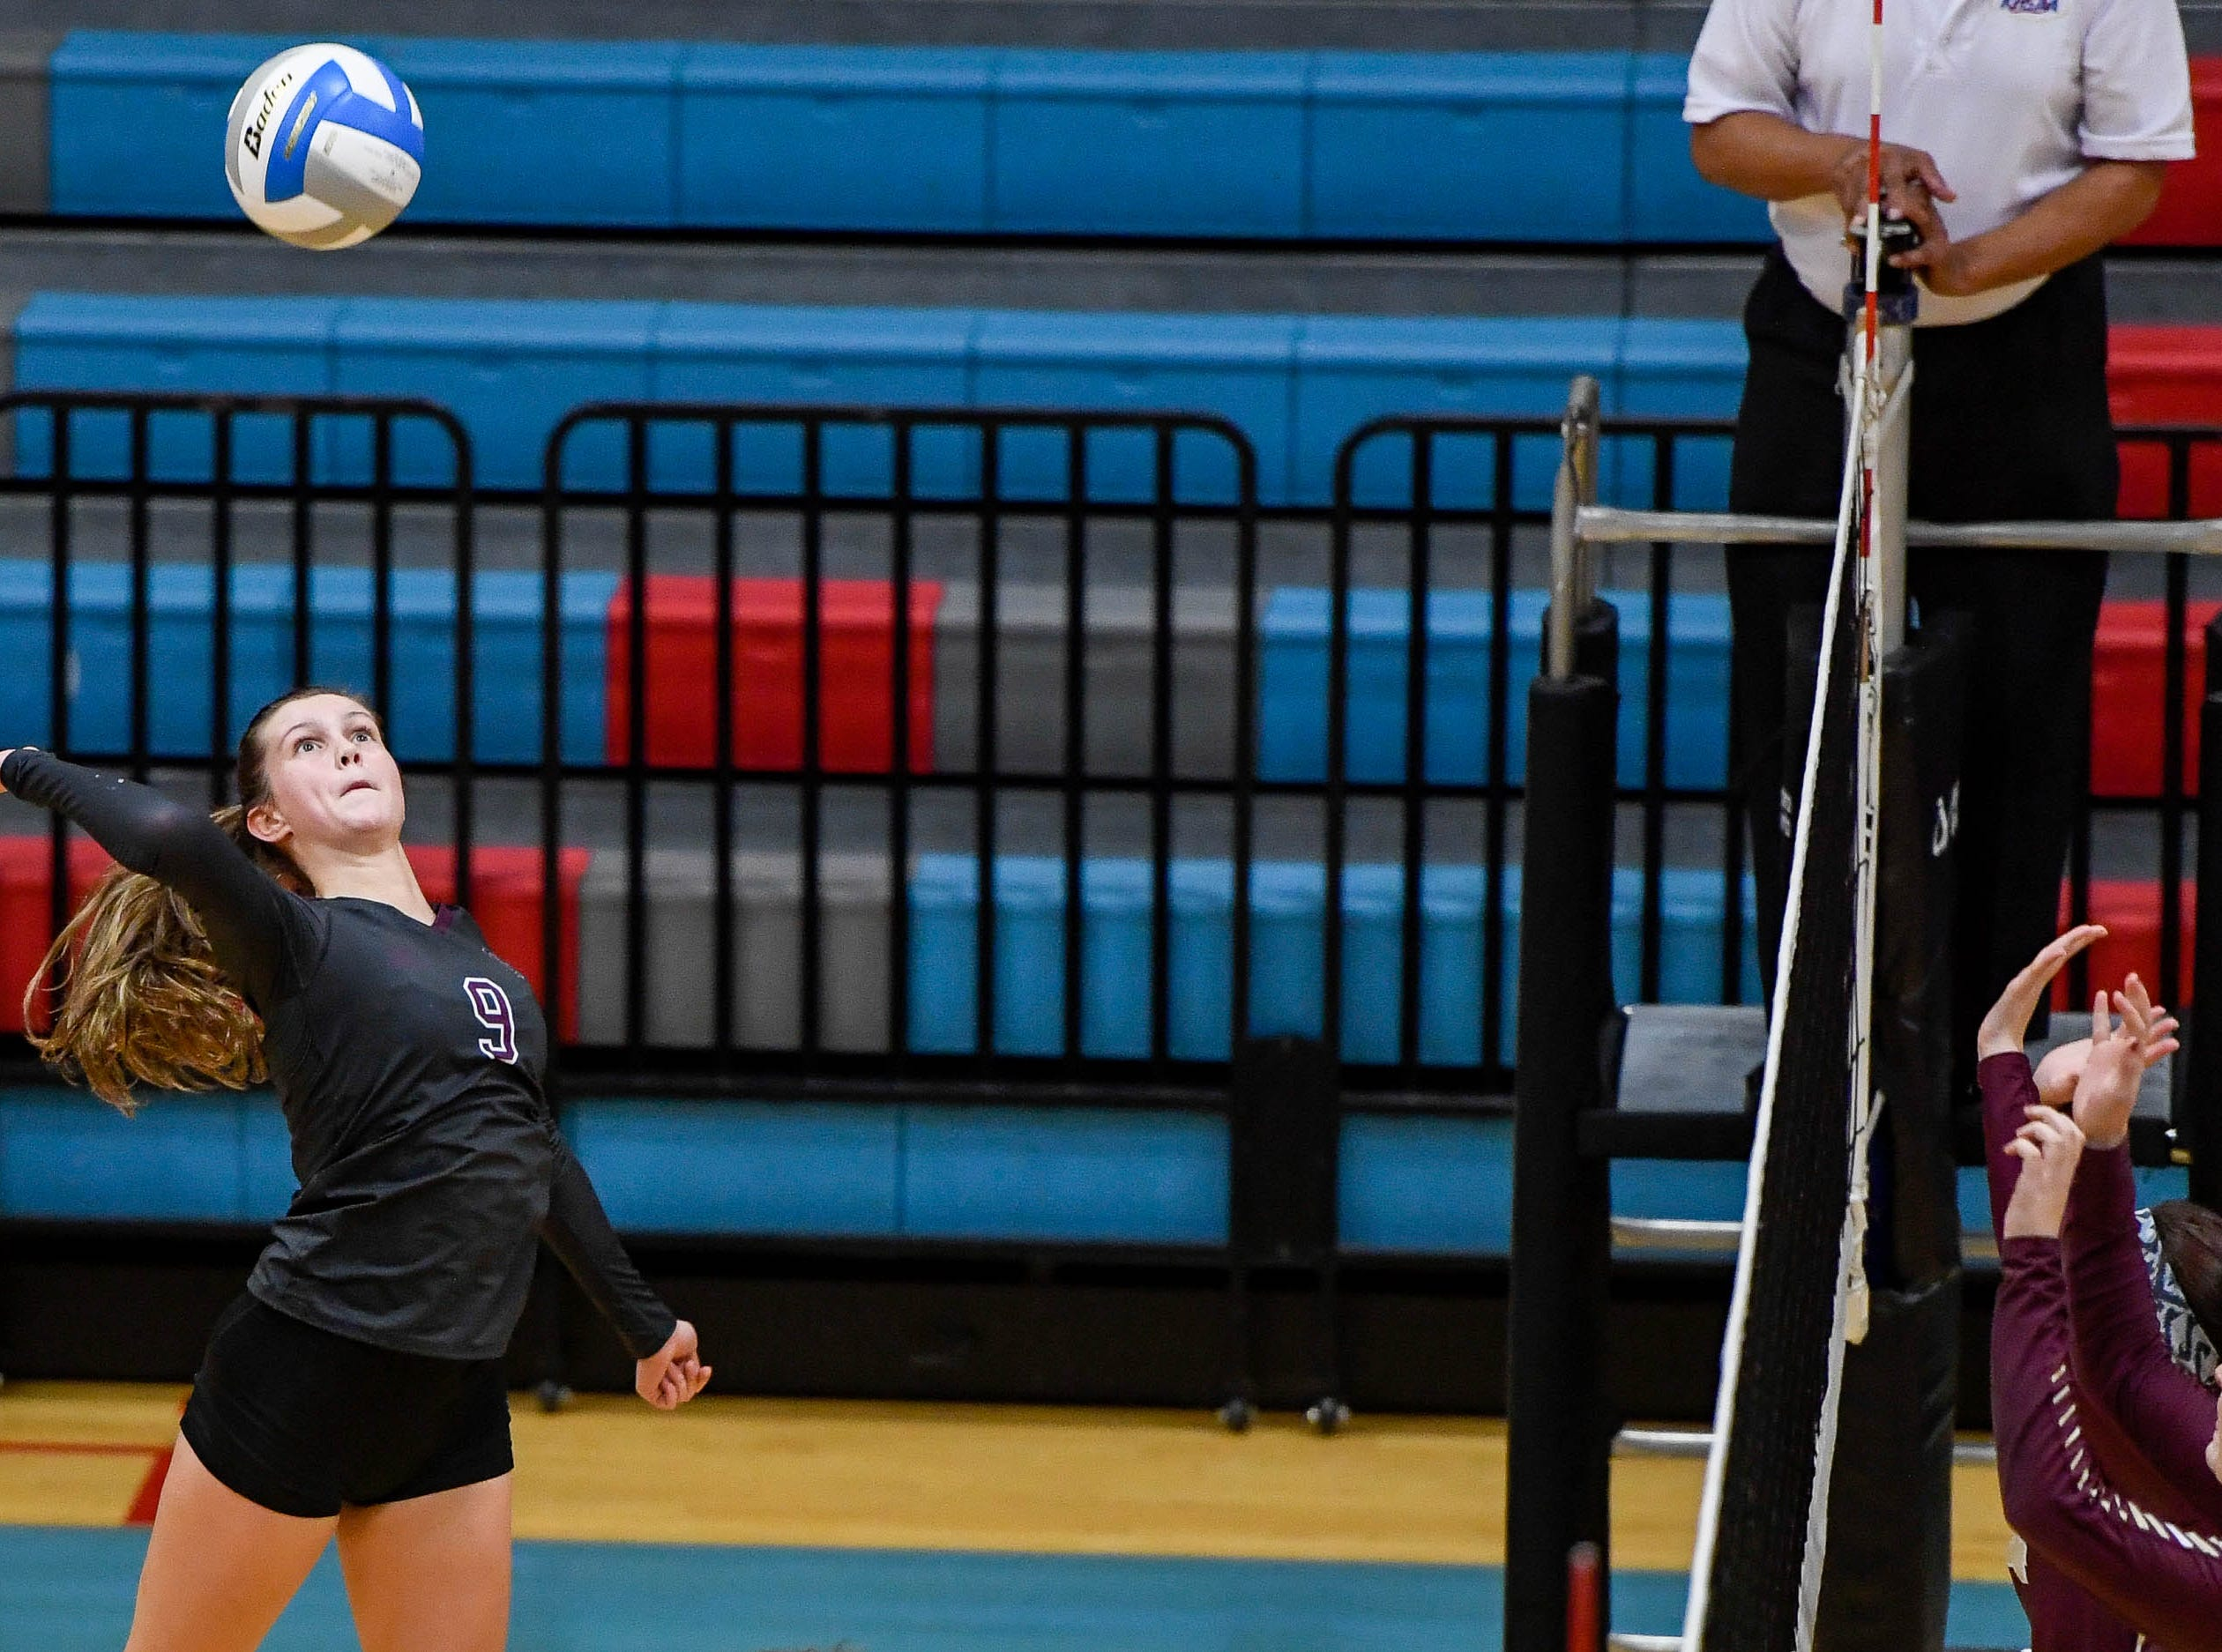 Henderson's Jordan Troutman (9) attacks at the net as the Henderson County Lady Colonels play the Webster County Lady Trojans in the District Volleyball Tournament championship match in Morganfield, Tuesday, October 9, 2018.